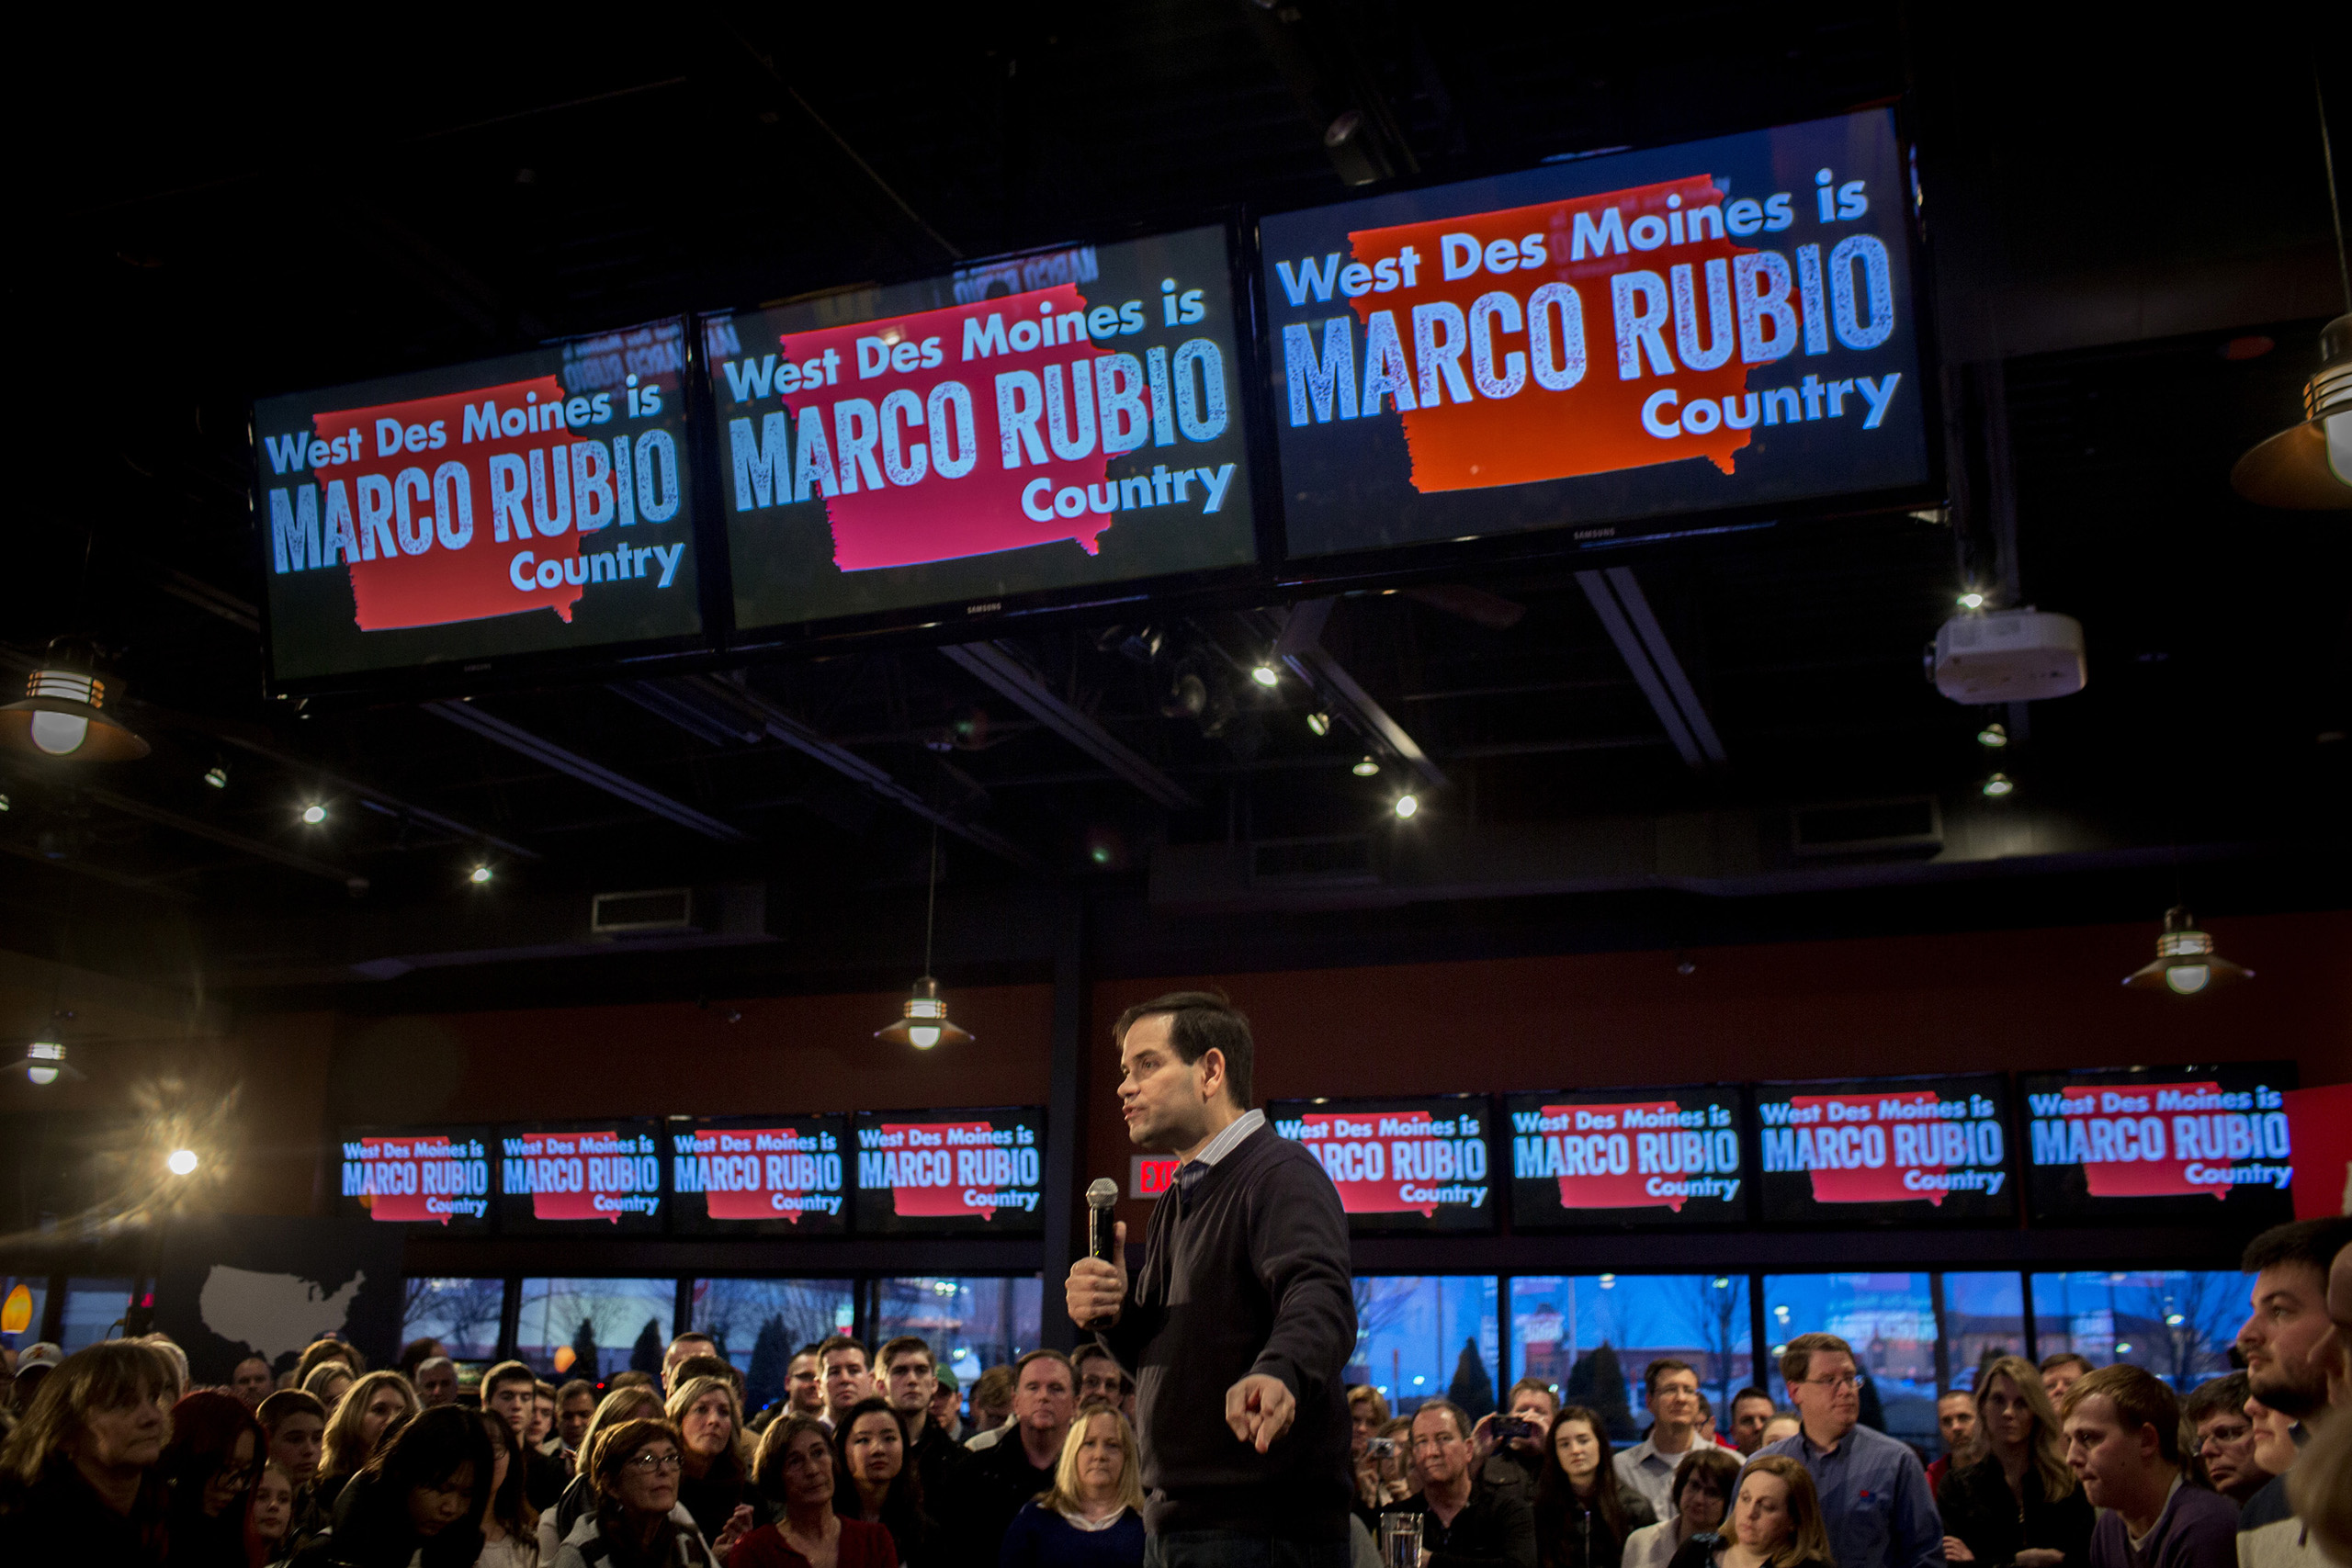 Marco Rubio spoke to supporters at a campaign rally at the Wellman's Pub and Rooftop in Des Moines Iowa on Wednesday evening, January 27th 2016.                                           (Natalie Keyssar for TIME)